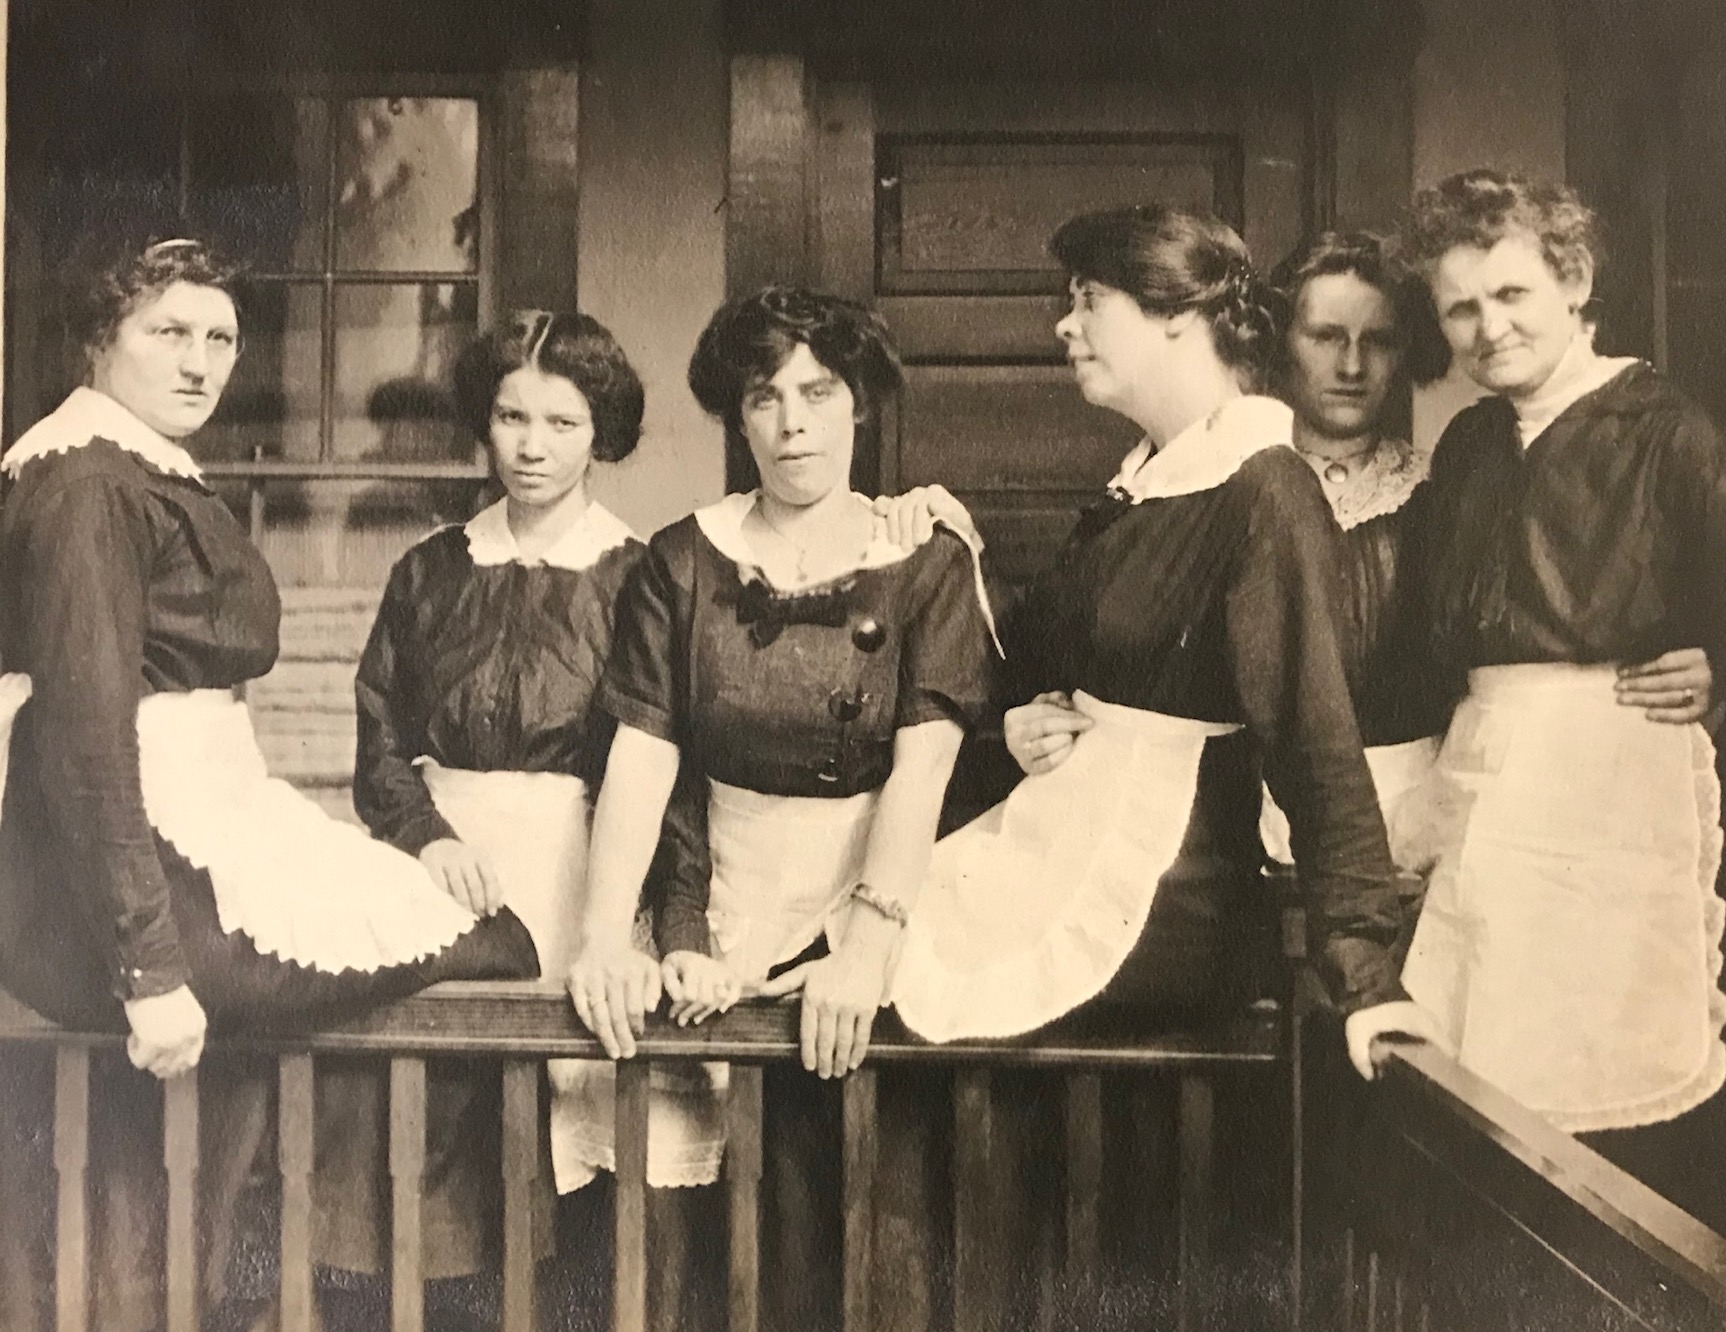 Portrait of waitstaff at The Balsams, circa 1915, Stephen Barba collection.